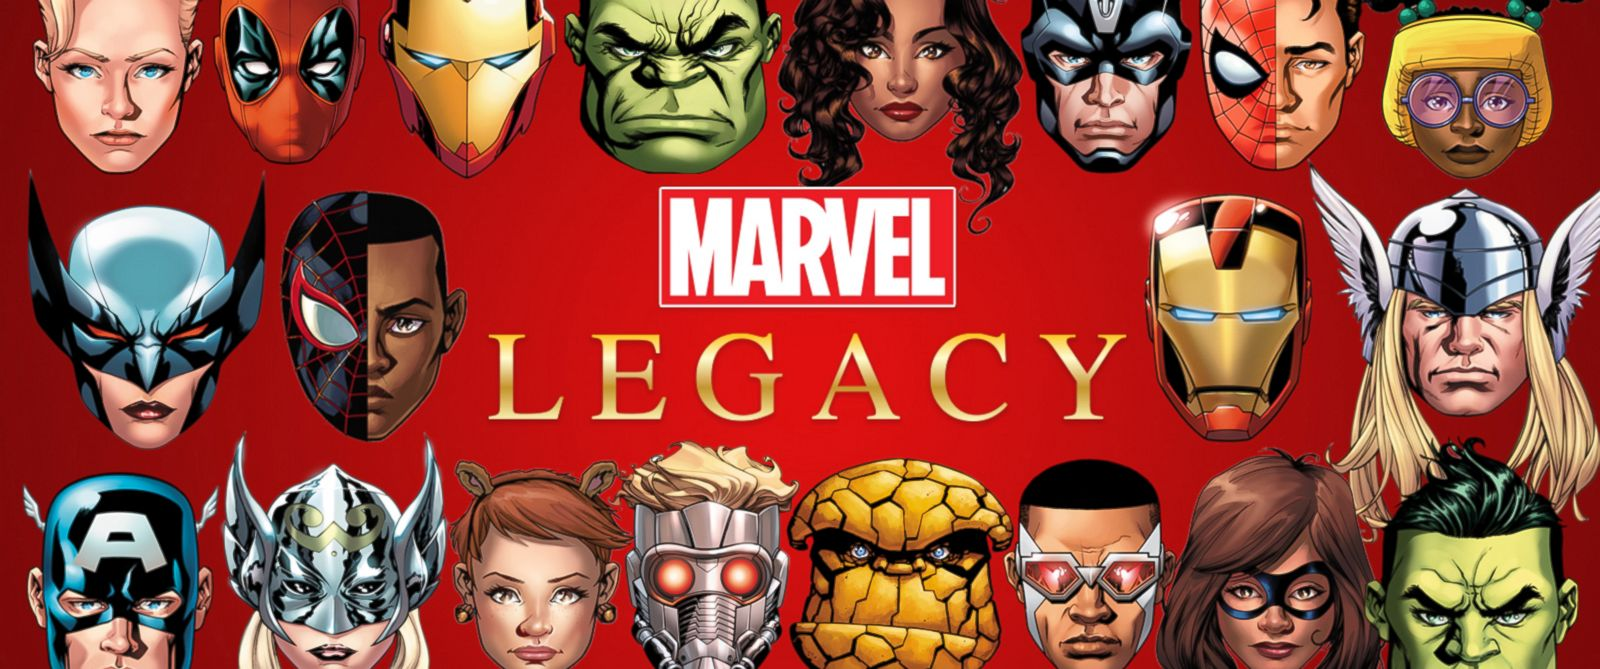 Avengers 1 000 000 Bc Marvel: The Epic Review: Check It Out: Marvel Legacy #1: To Debut